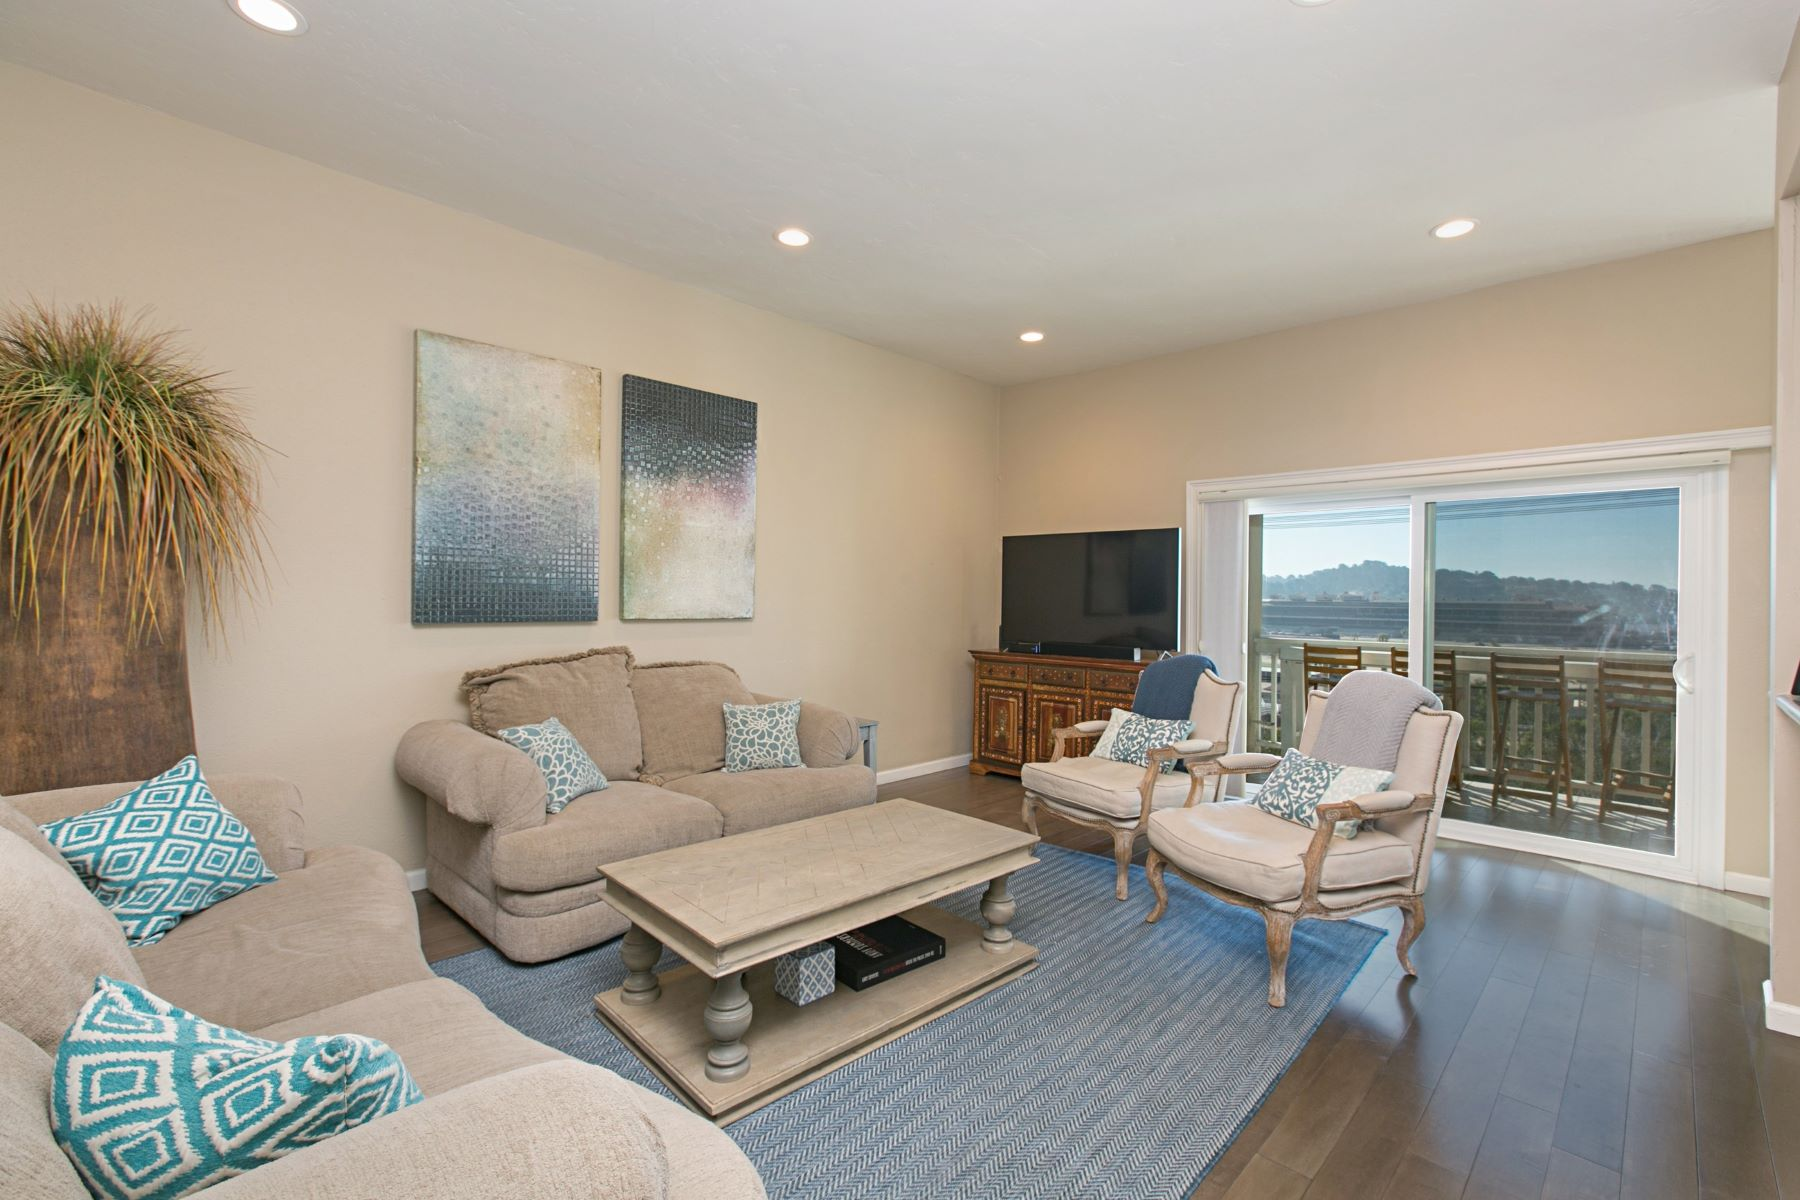 Condominiums for Sale at 245 Turf View Drive Solana Beach, California 92075 United States